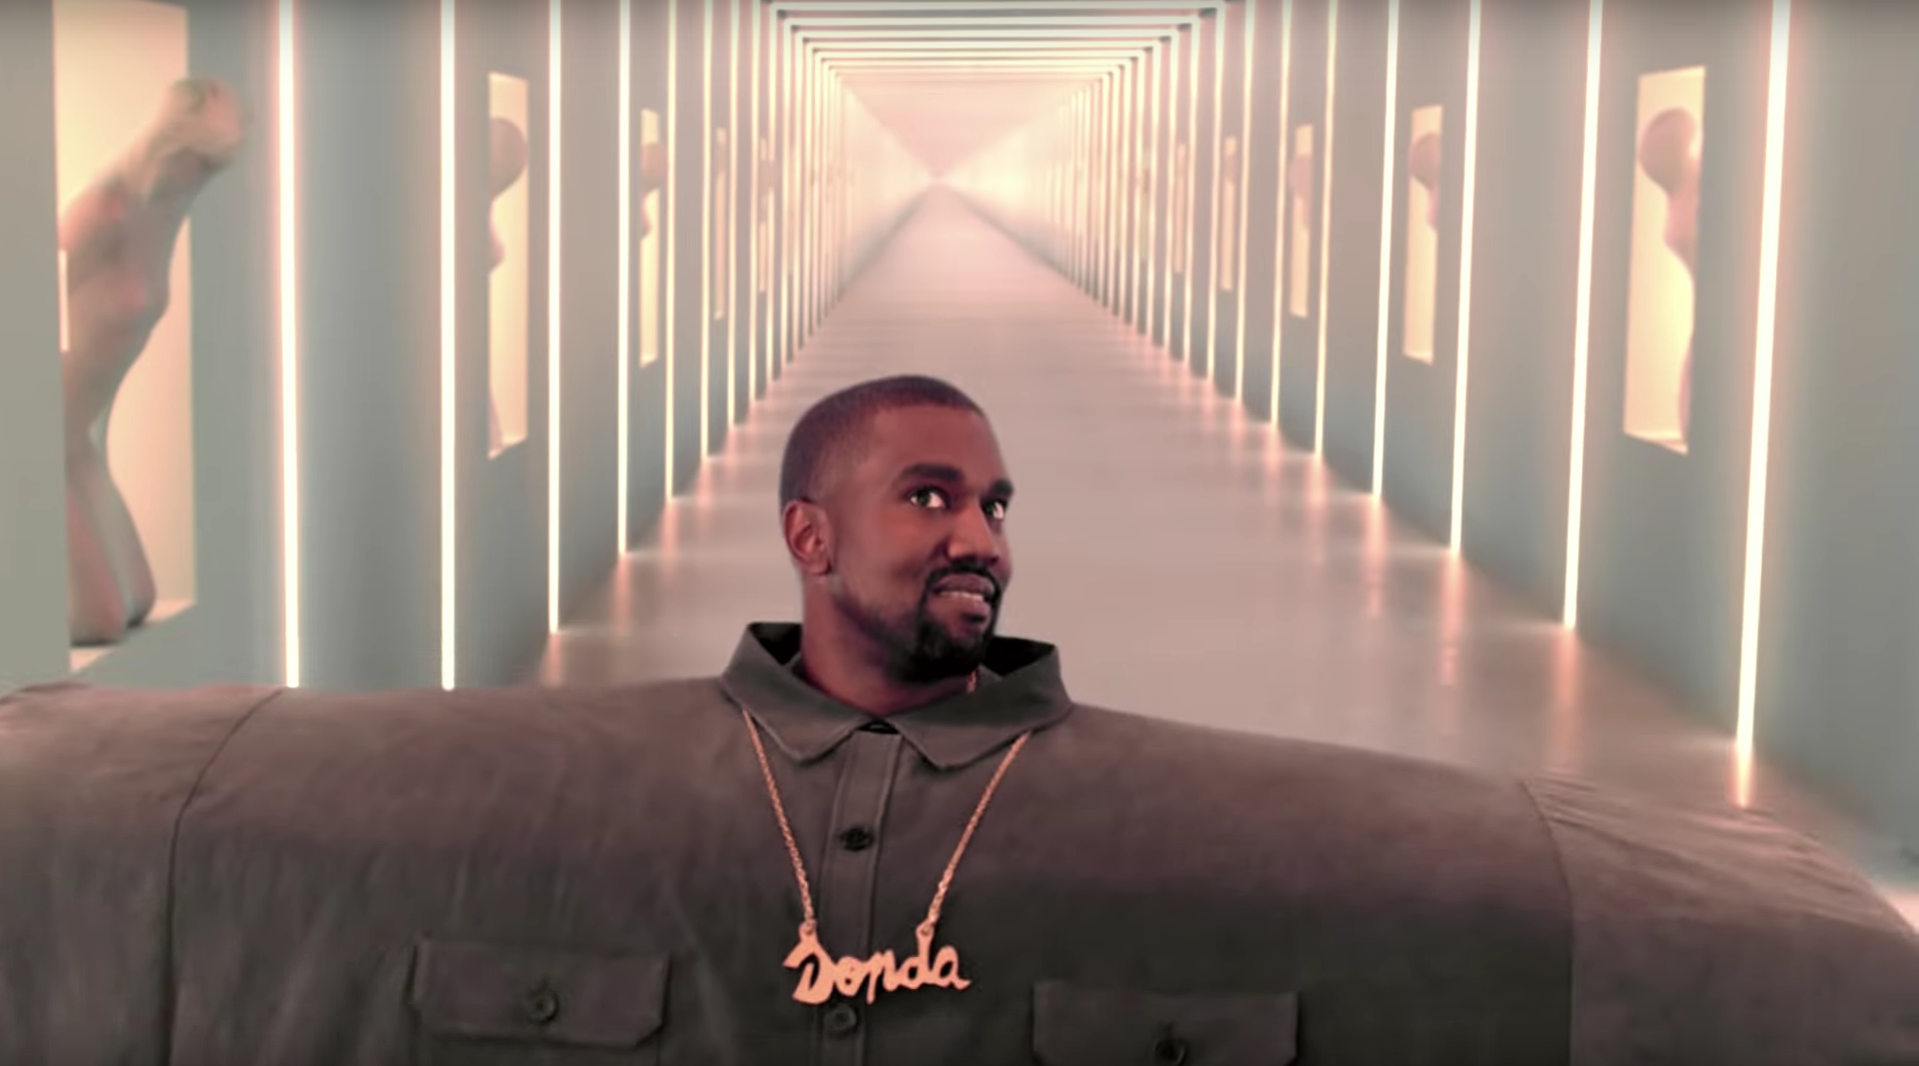 The Internet Reacts To Kanye West's Bizarre New Video